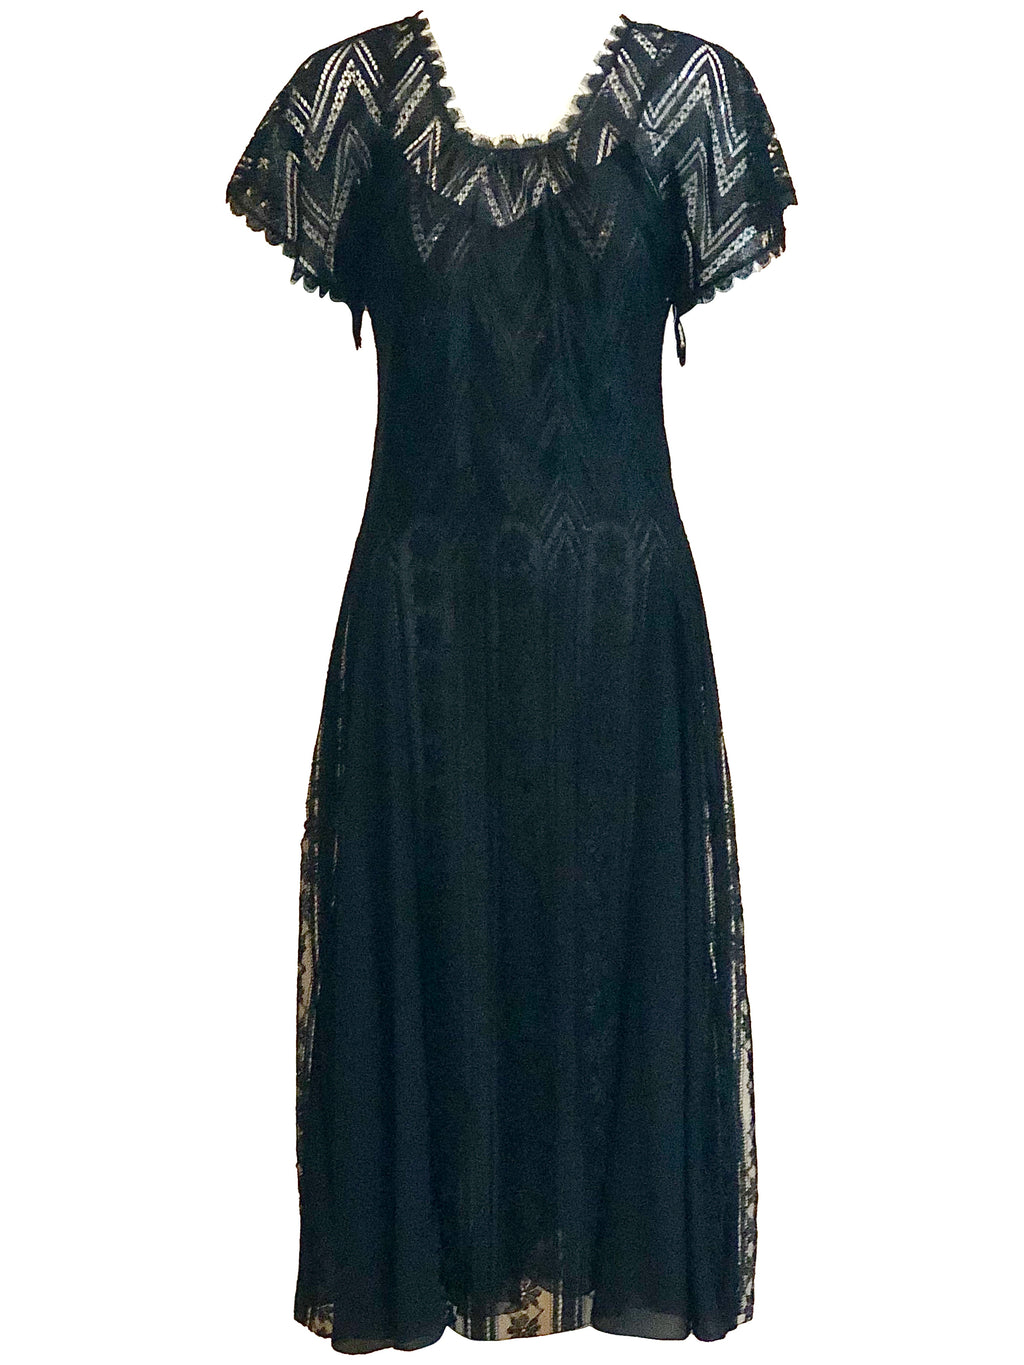 Holly's Harp 70s Black Deco Dress  Jersey and Chiffon FRONT 1 of 4